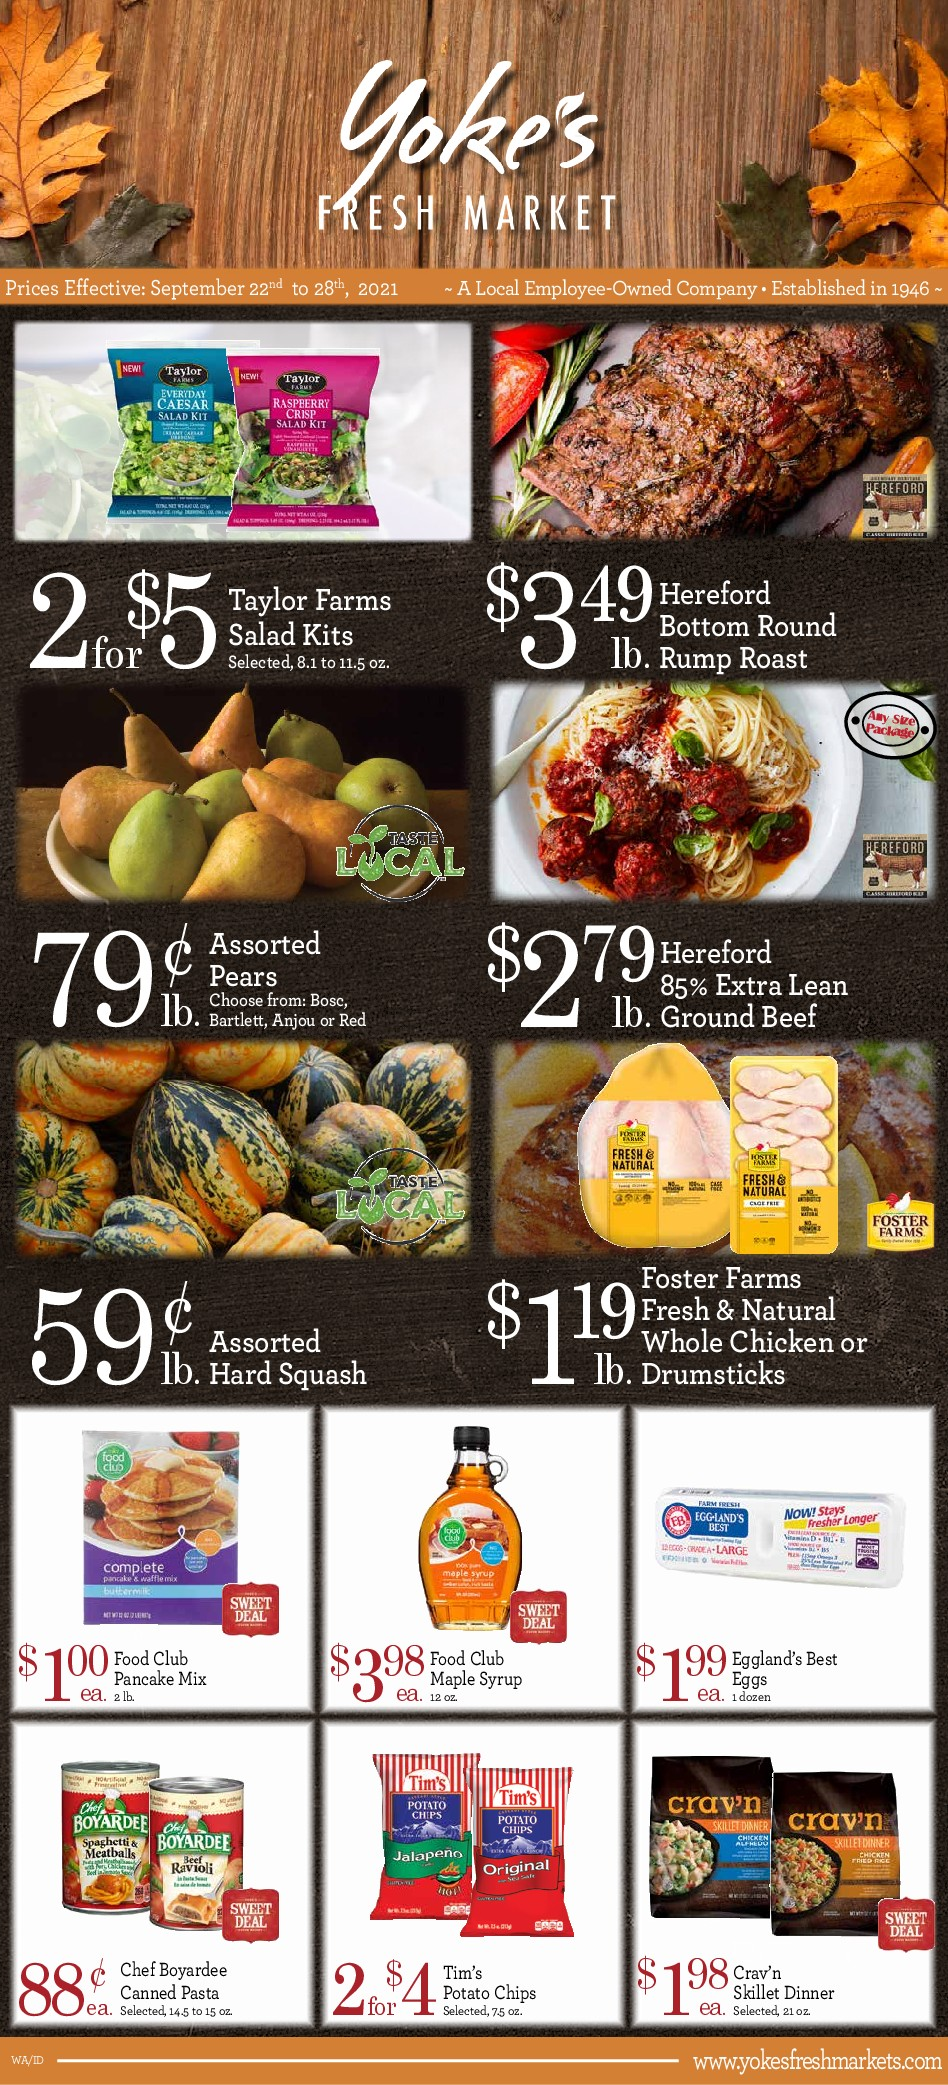 Page 1 of 09.22.21 Weekly Ad